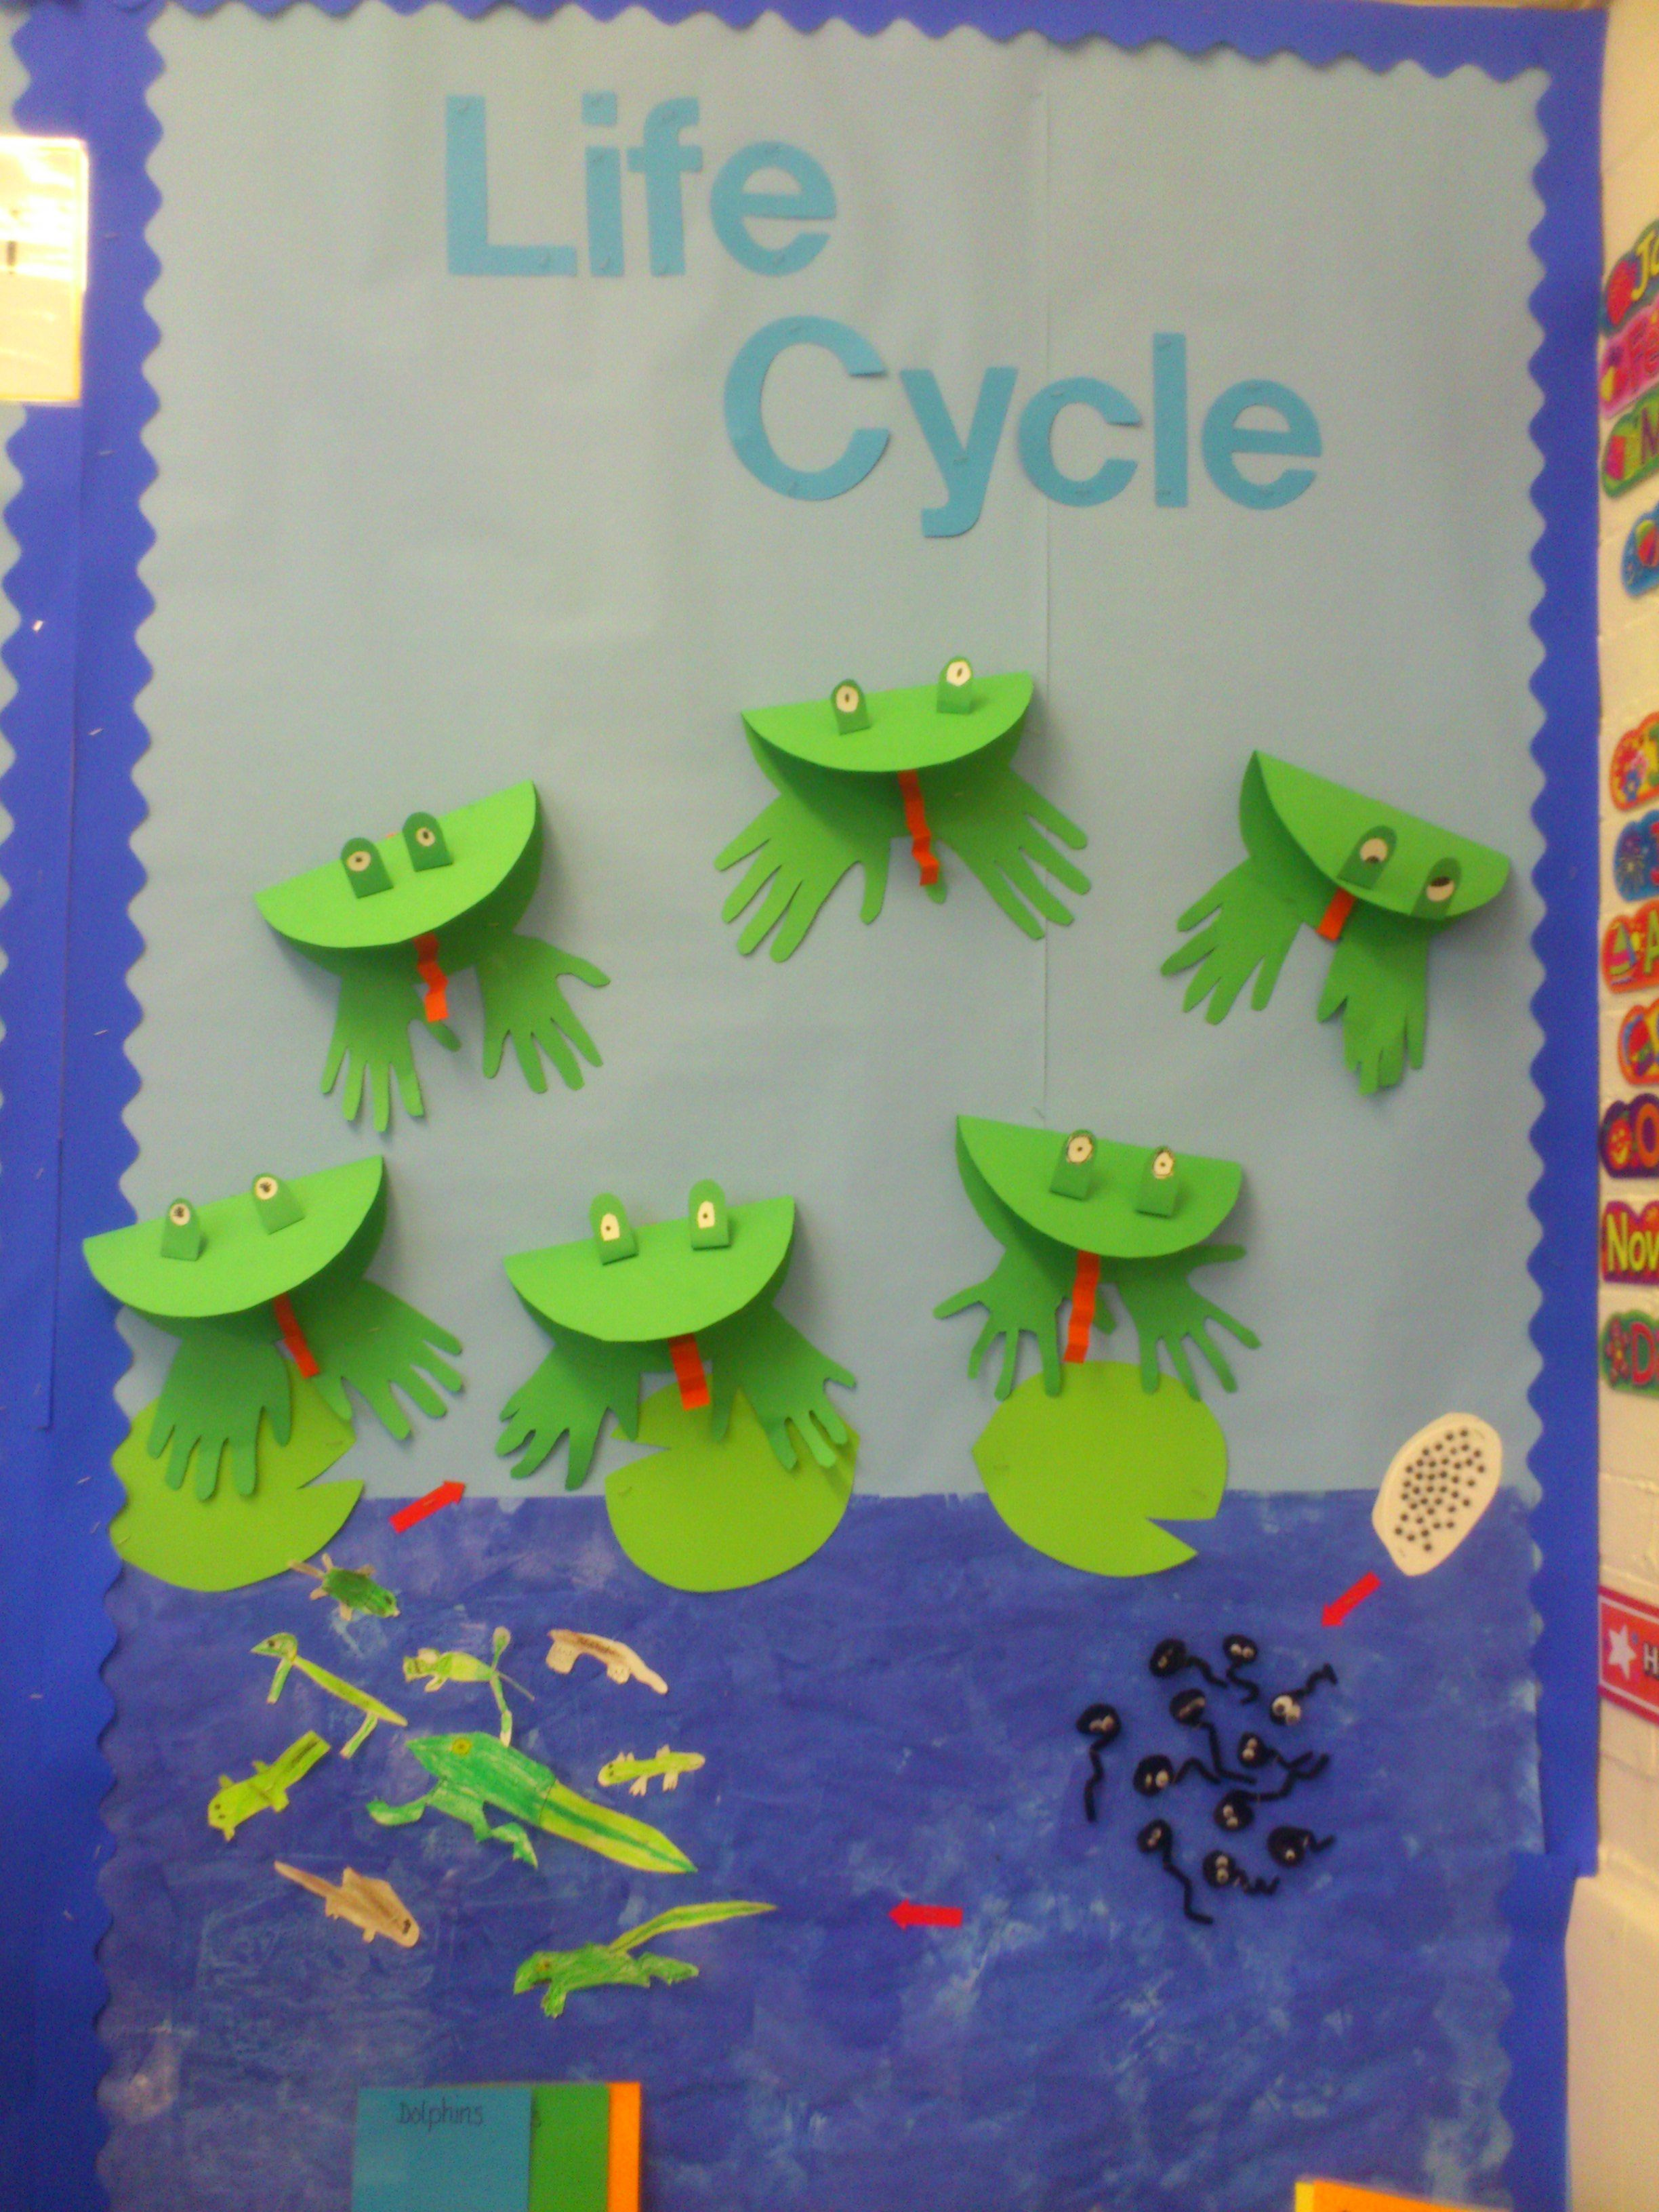 Frog Life Cycle Display From My Year 2 Class Compiled By Combining Ideas From Pinterest